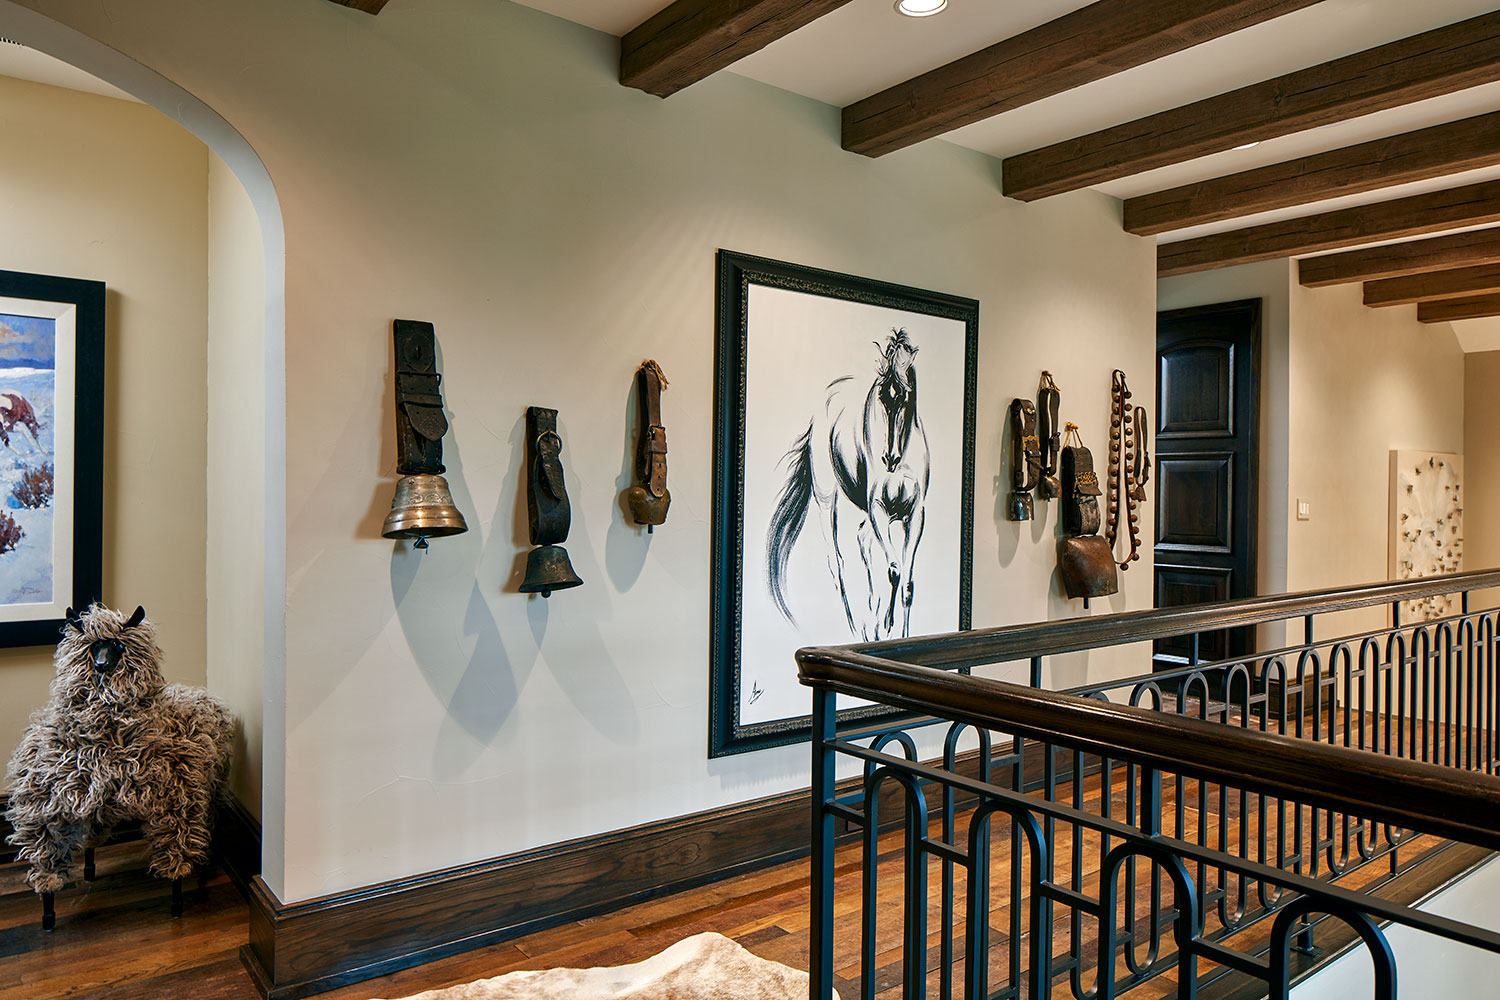 Upper Hallway with Wood Beam Ceiling, Cow Bell Collection